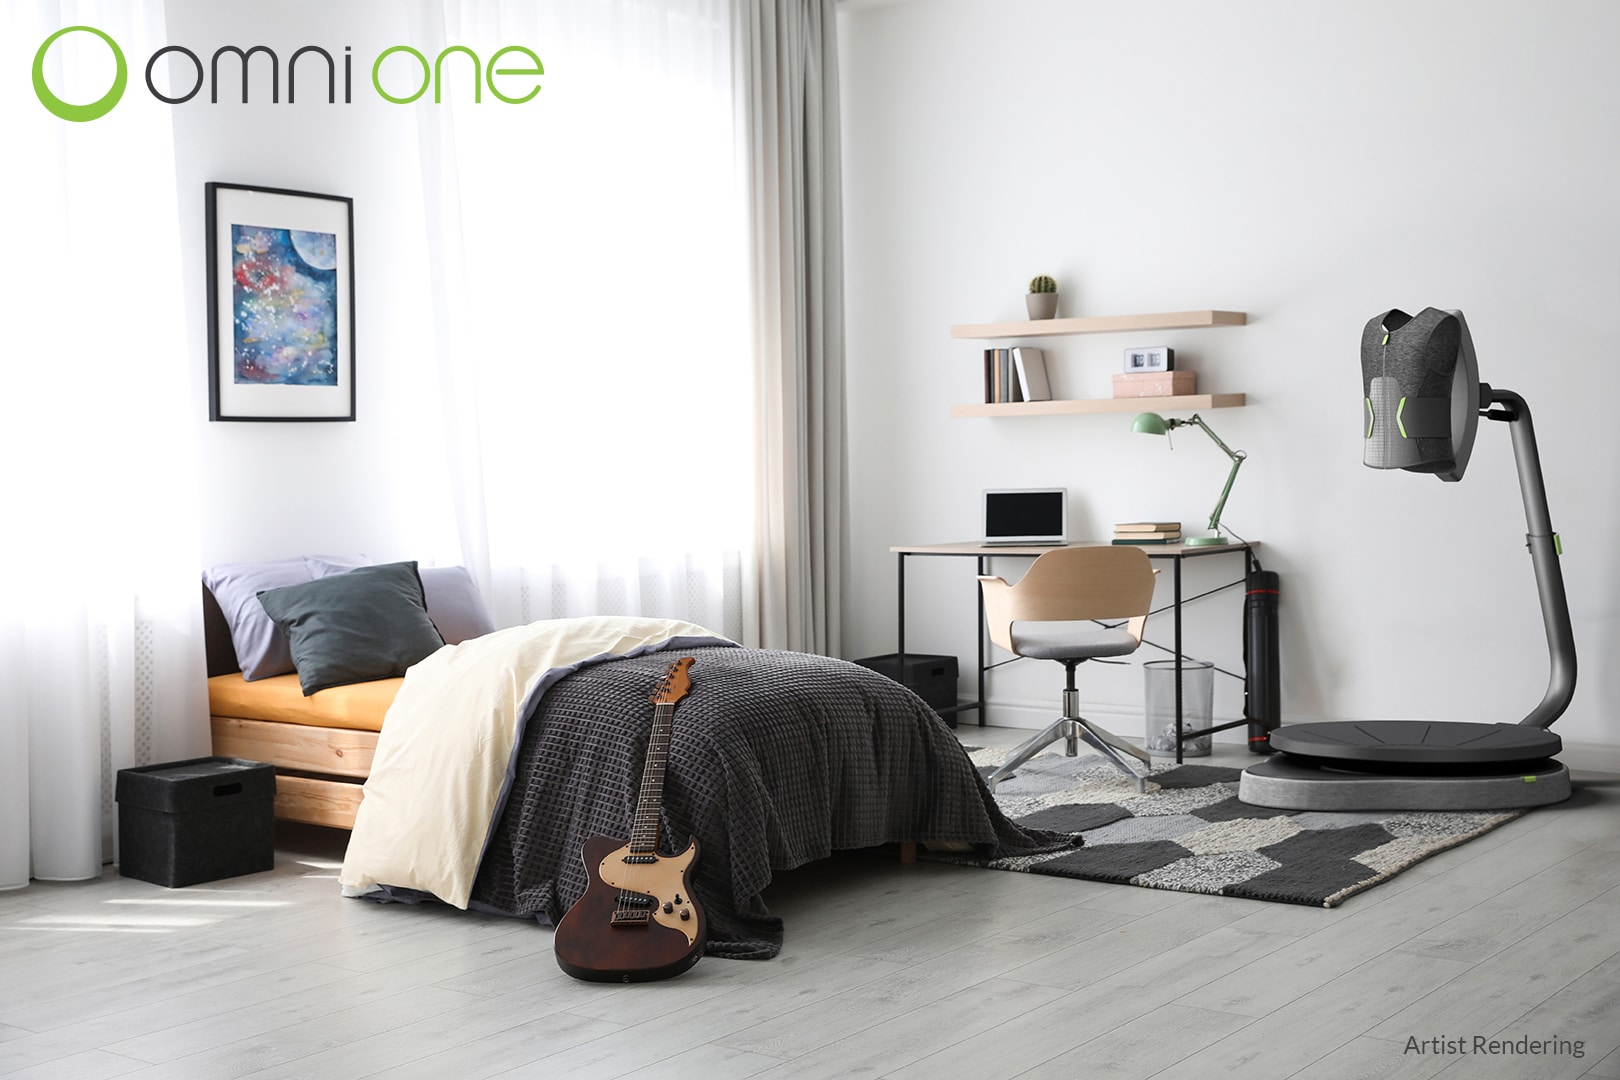 Omni one vr treadmill bedroom